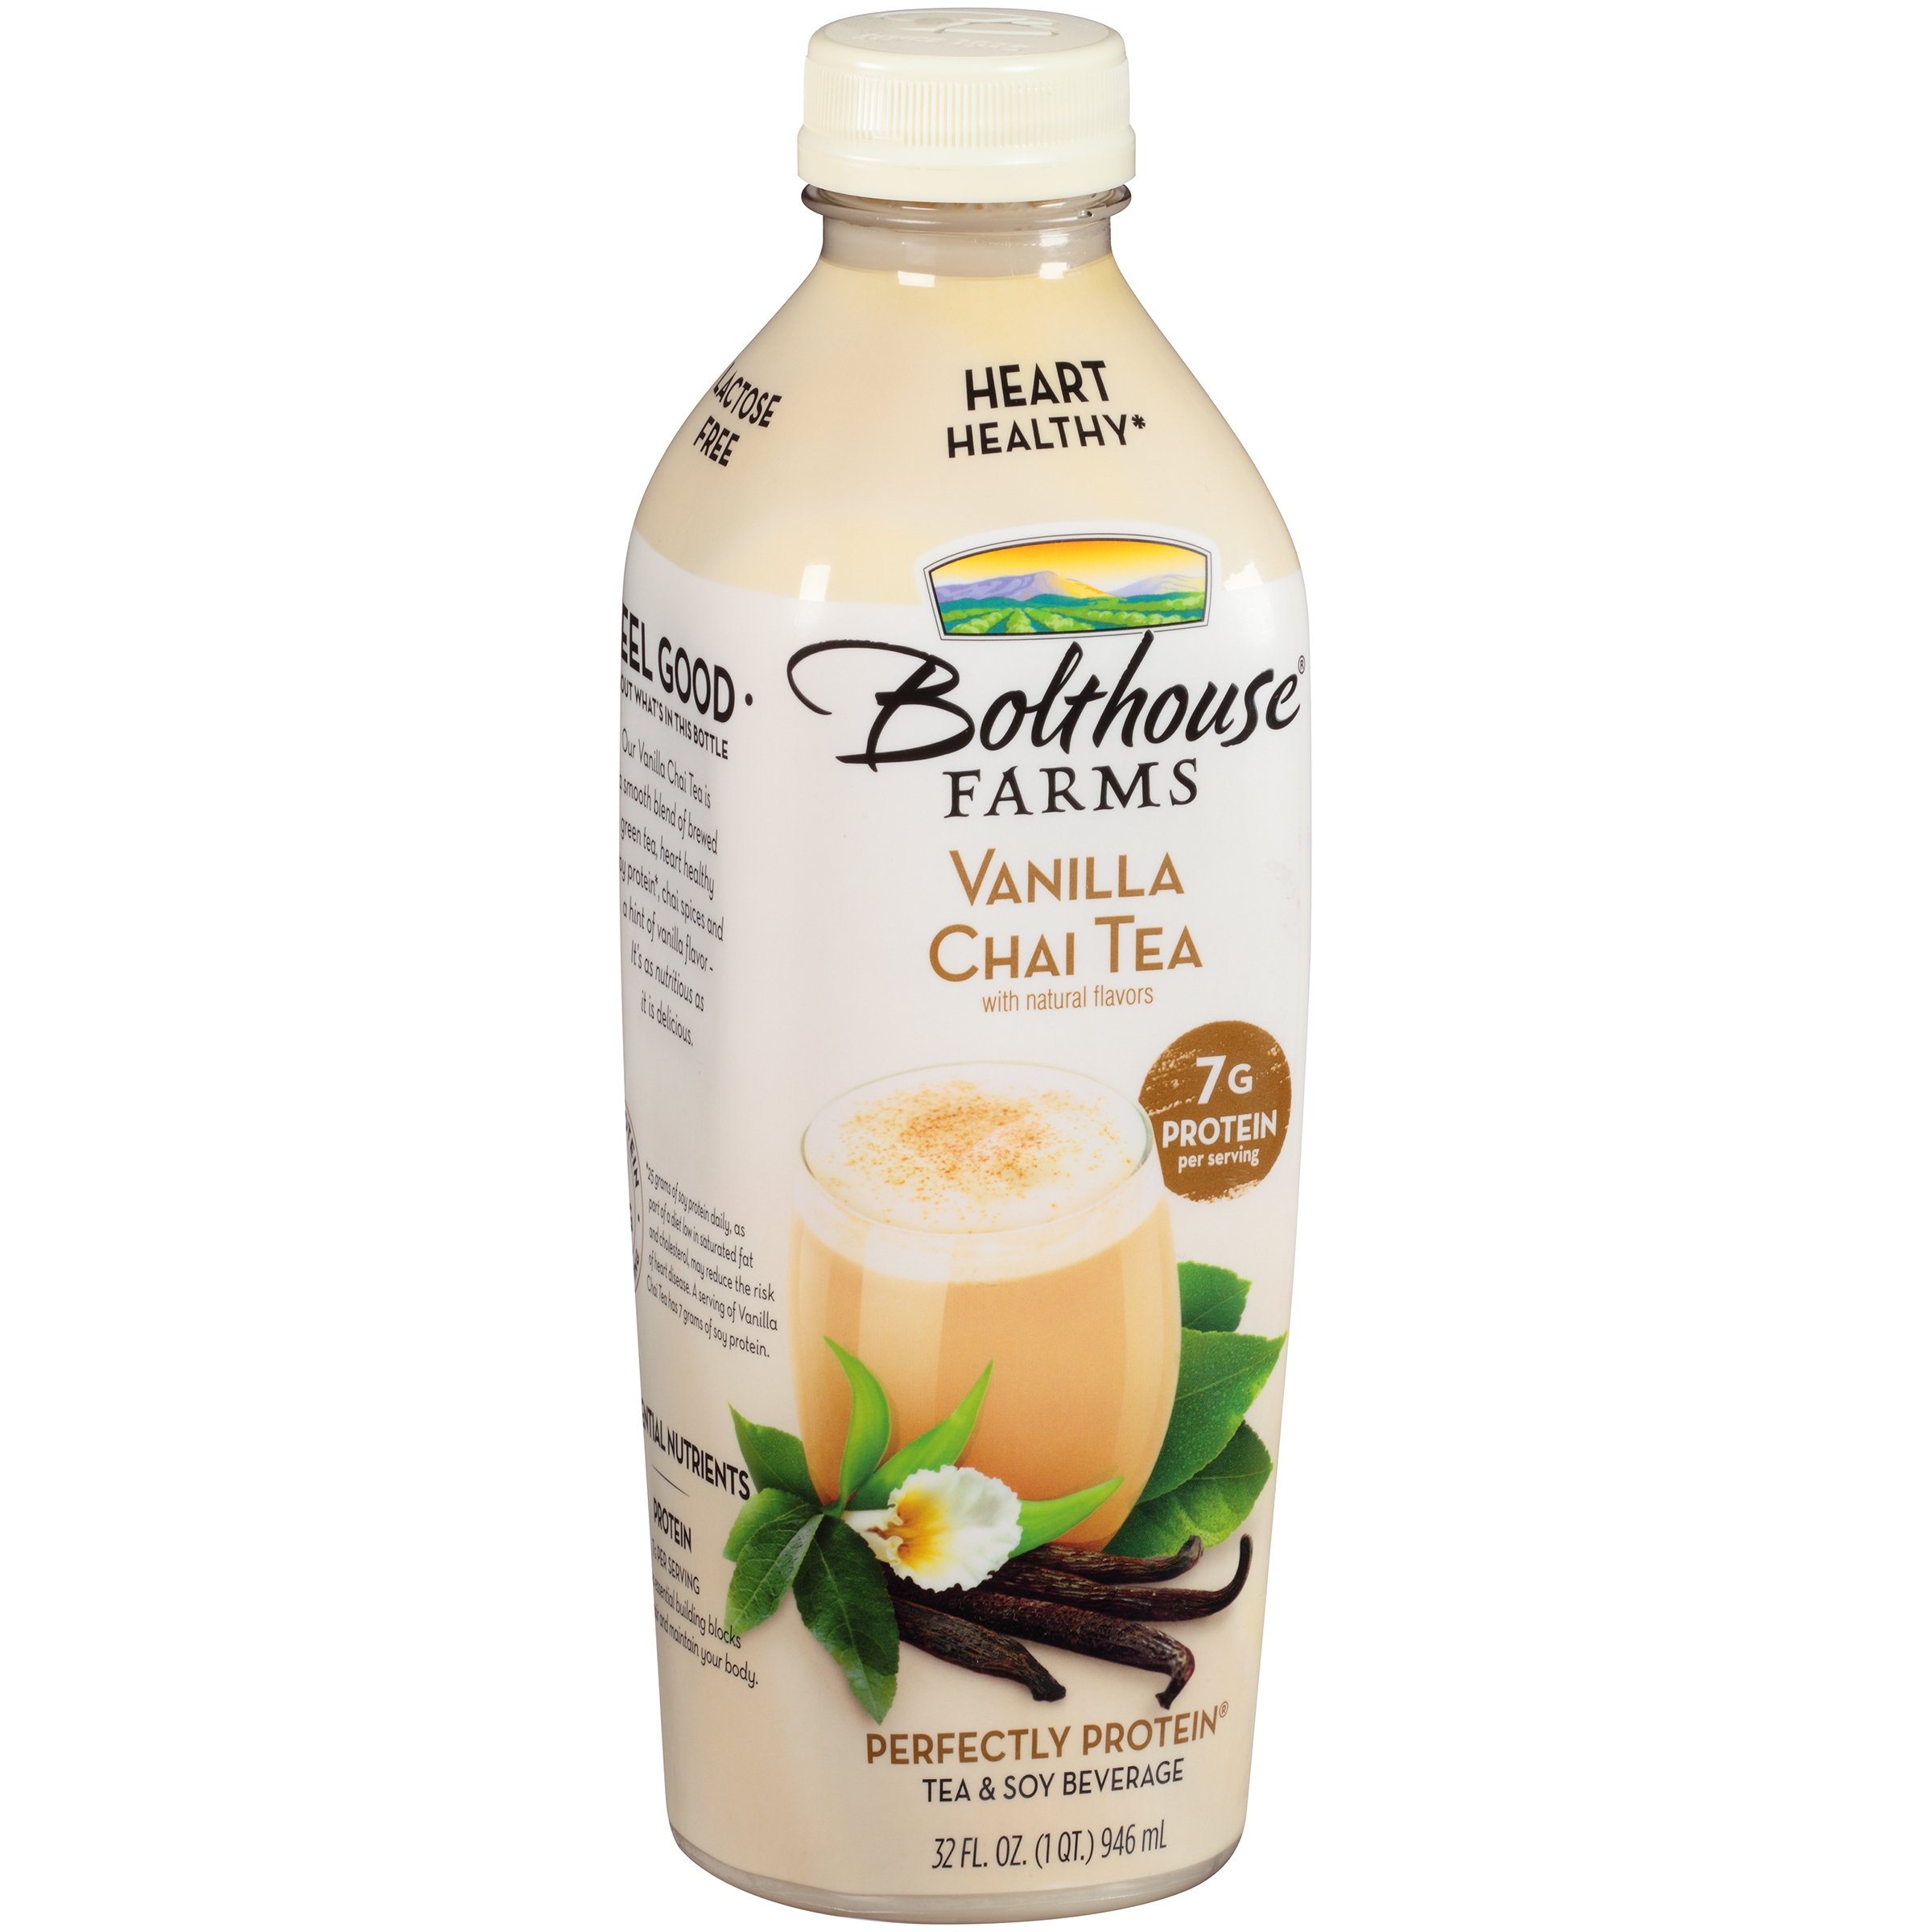 Bolthouse Farms Perfectly Protein Vanilla Chai Tea & Soy Beverage 32 fl. oz. Bottle